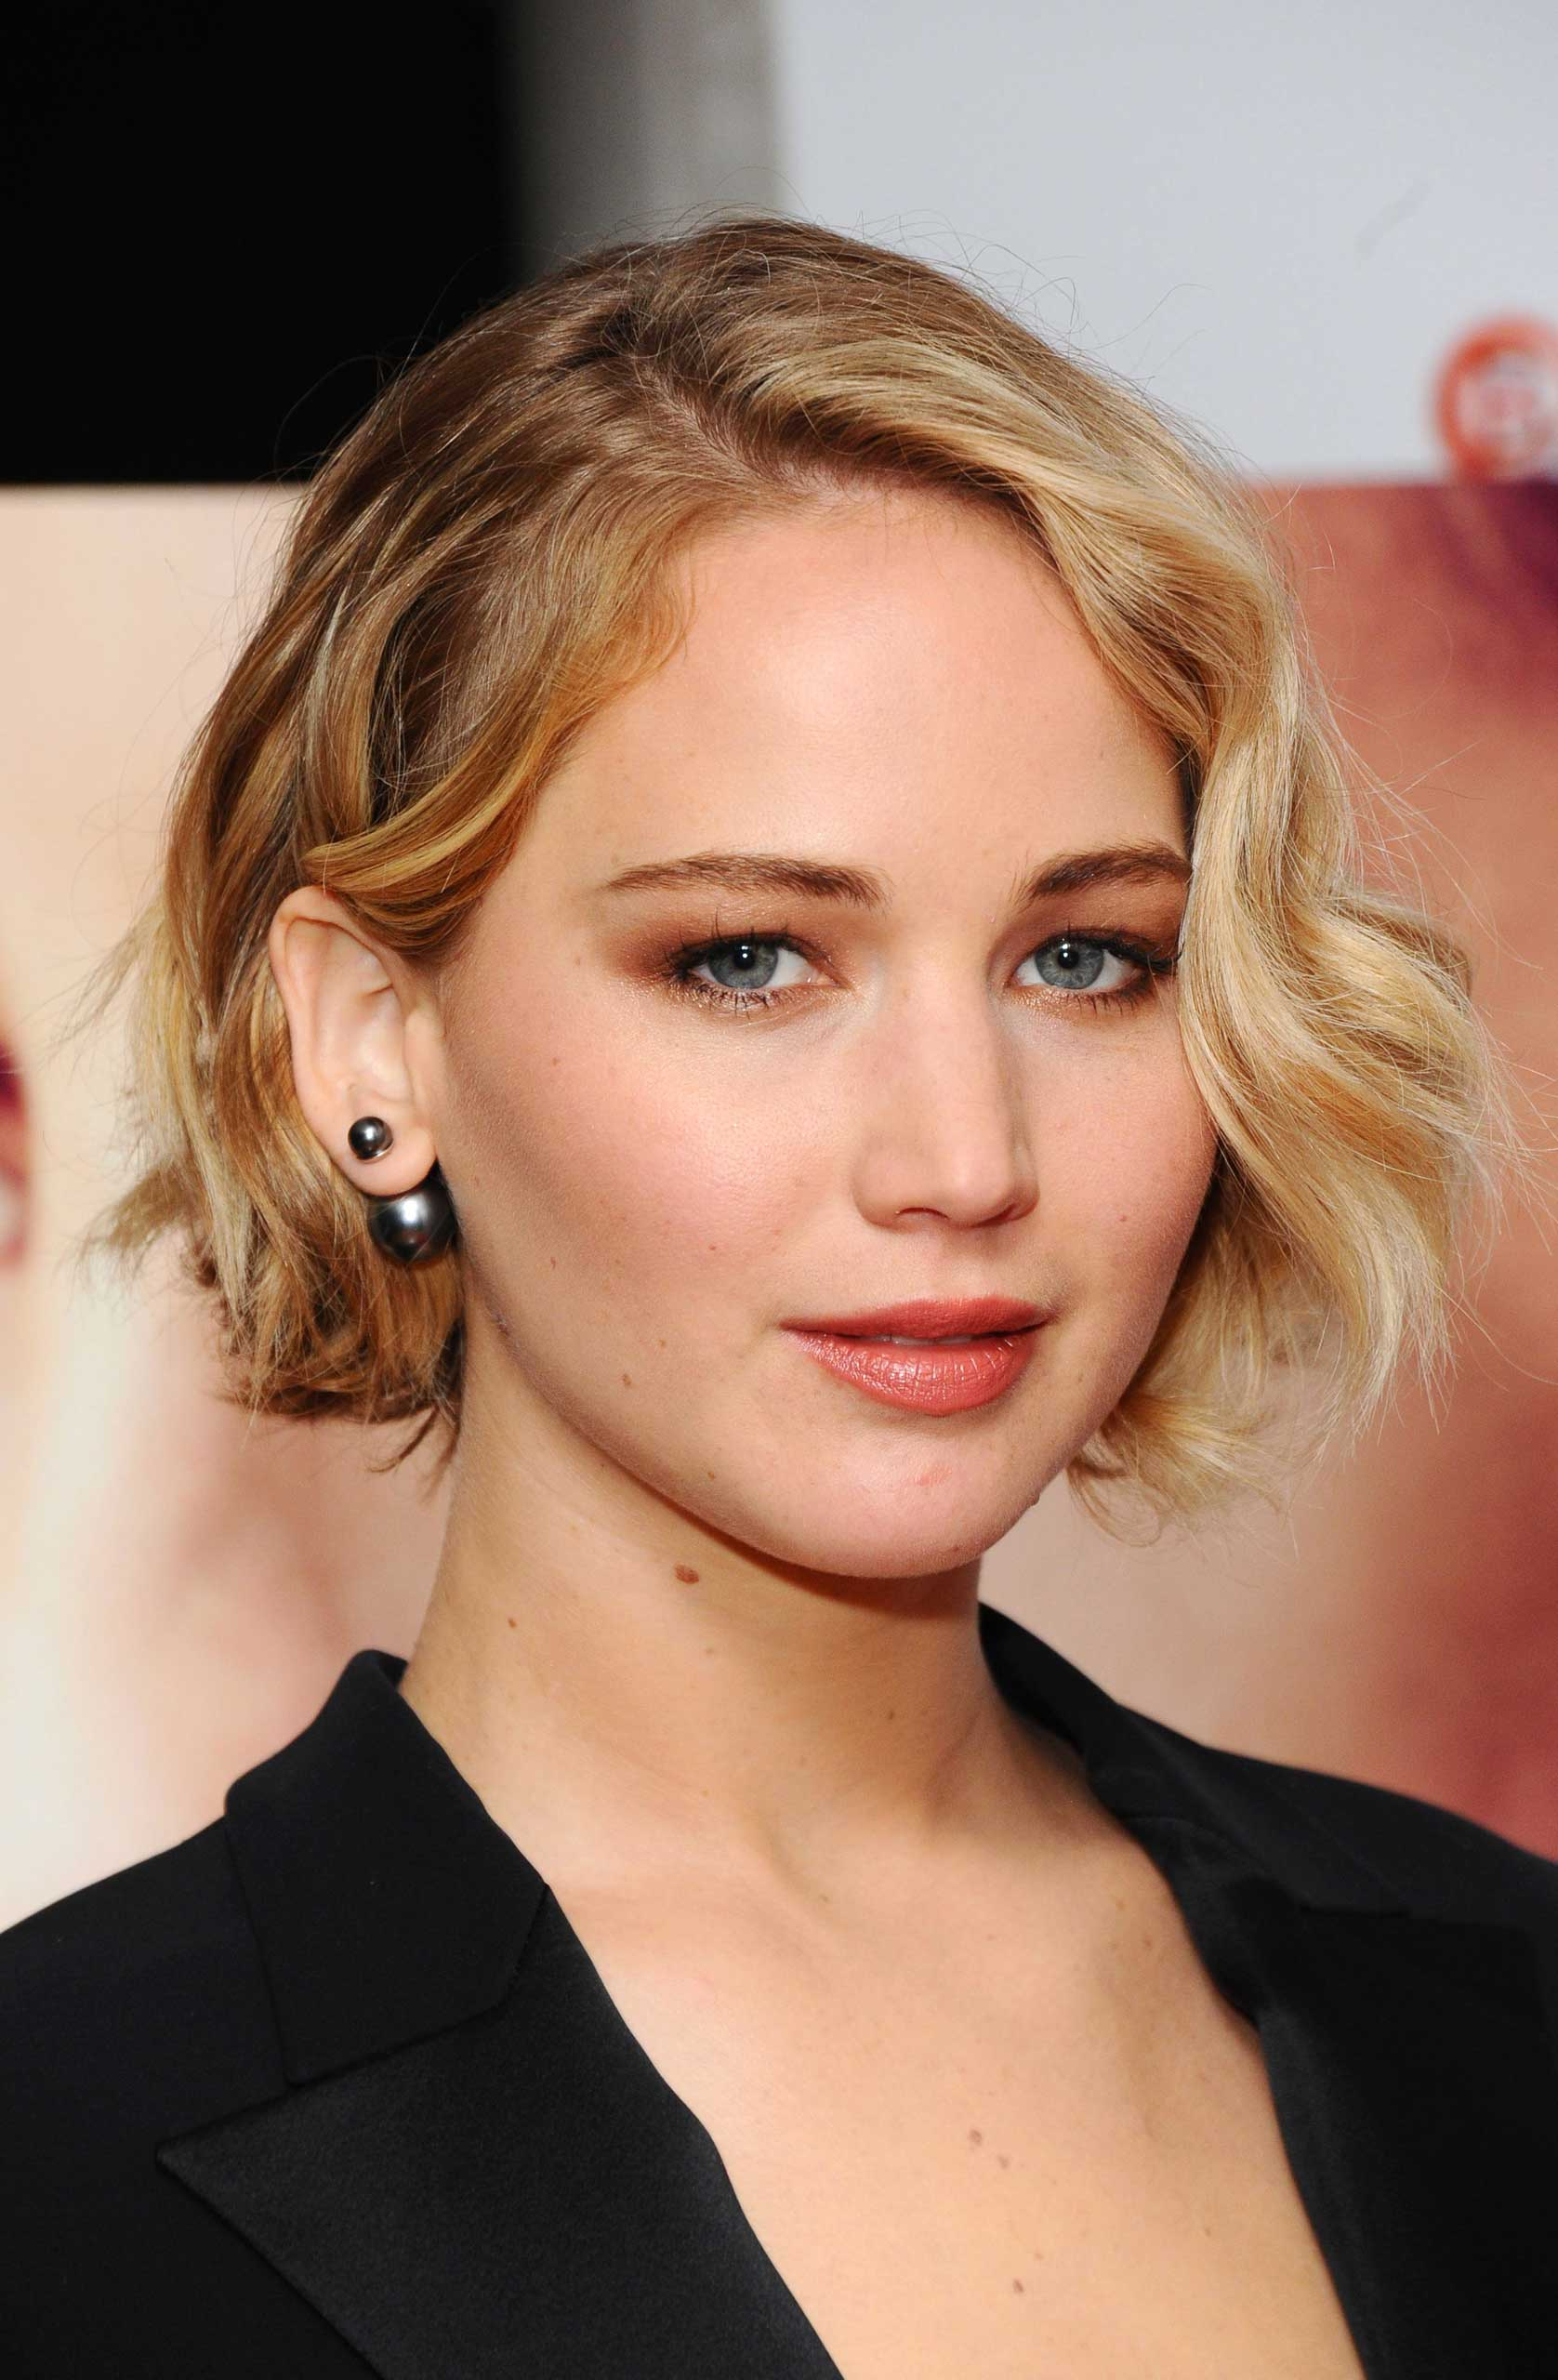 Jennifer Lawrence attends the premiere for  Serena  during the 58th BFI London Film Festival at Vue West End on Oct. 13, 2014 in London.